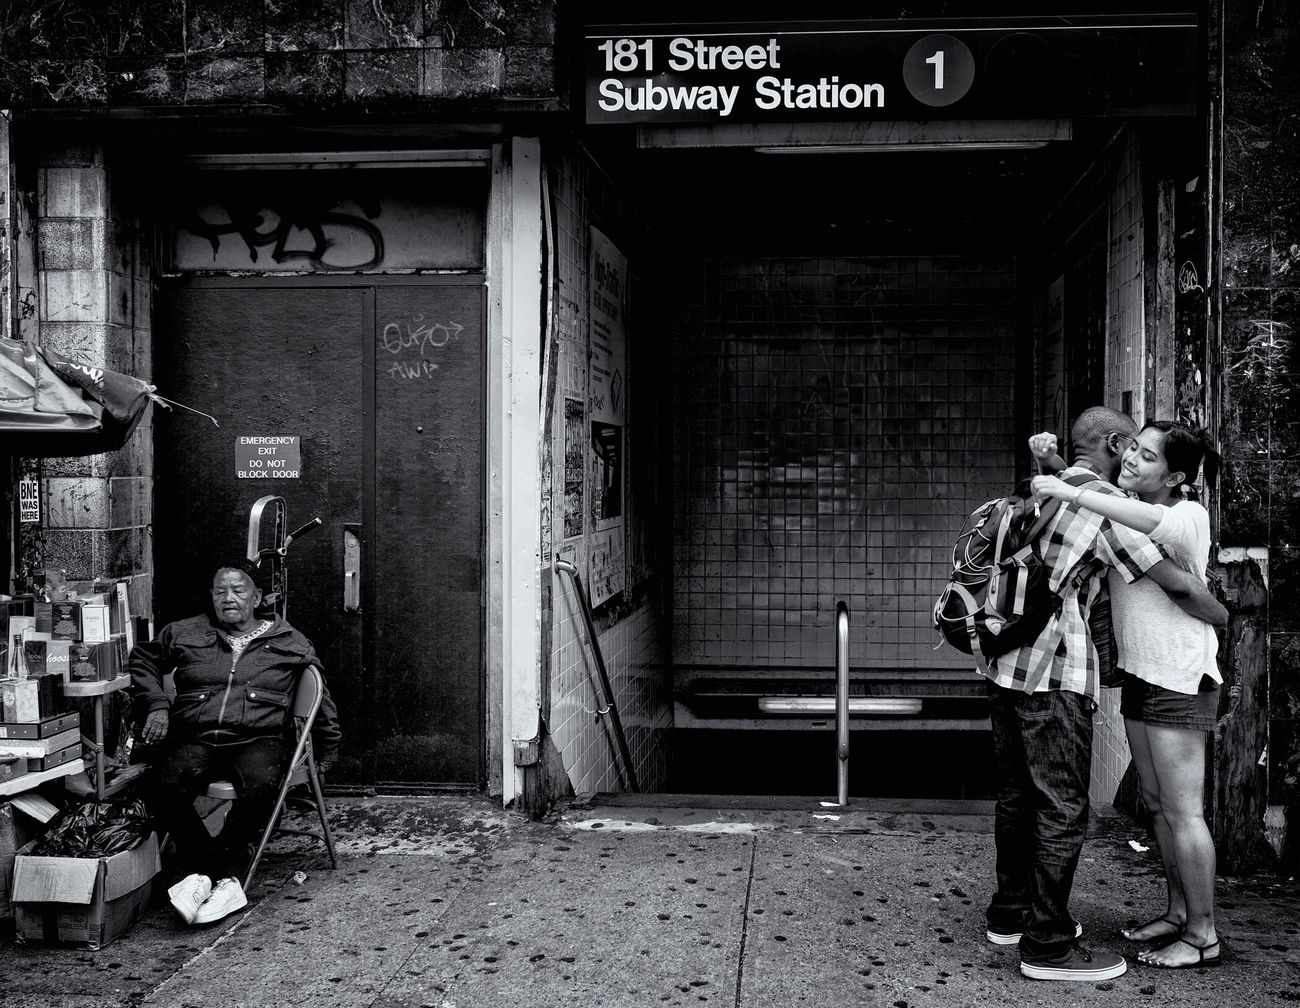 Till Next Time Subway Station Black & White Black And White Mta Nyc Transit Bw_collection Subway Monochrome Streetphotography_bw Street Photography The Street Photographer - 2016 EyeEm Awards Streetphotography New York City Washington Heights Streetscape Streetphoto_bw